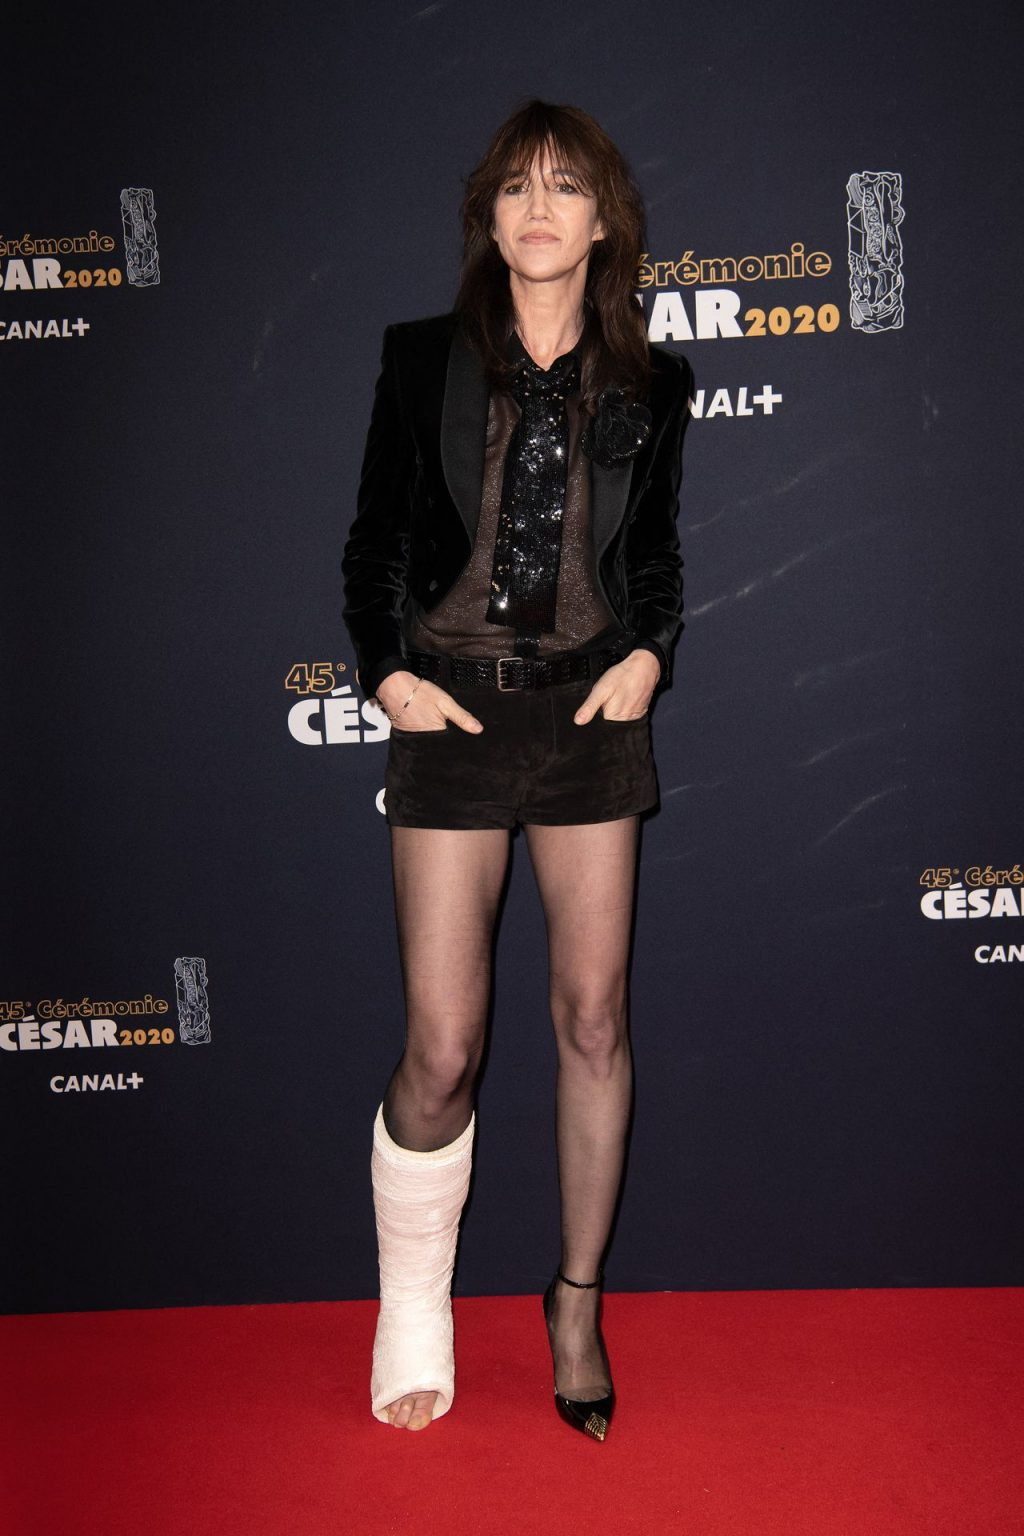 Charlotte Gainsbourg Shows Her Tits and Injured Leg at the 2020 Cesar Film Awards (74 Photos)